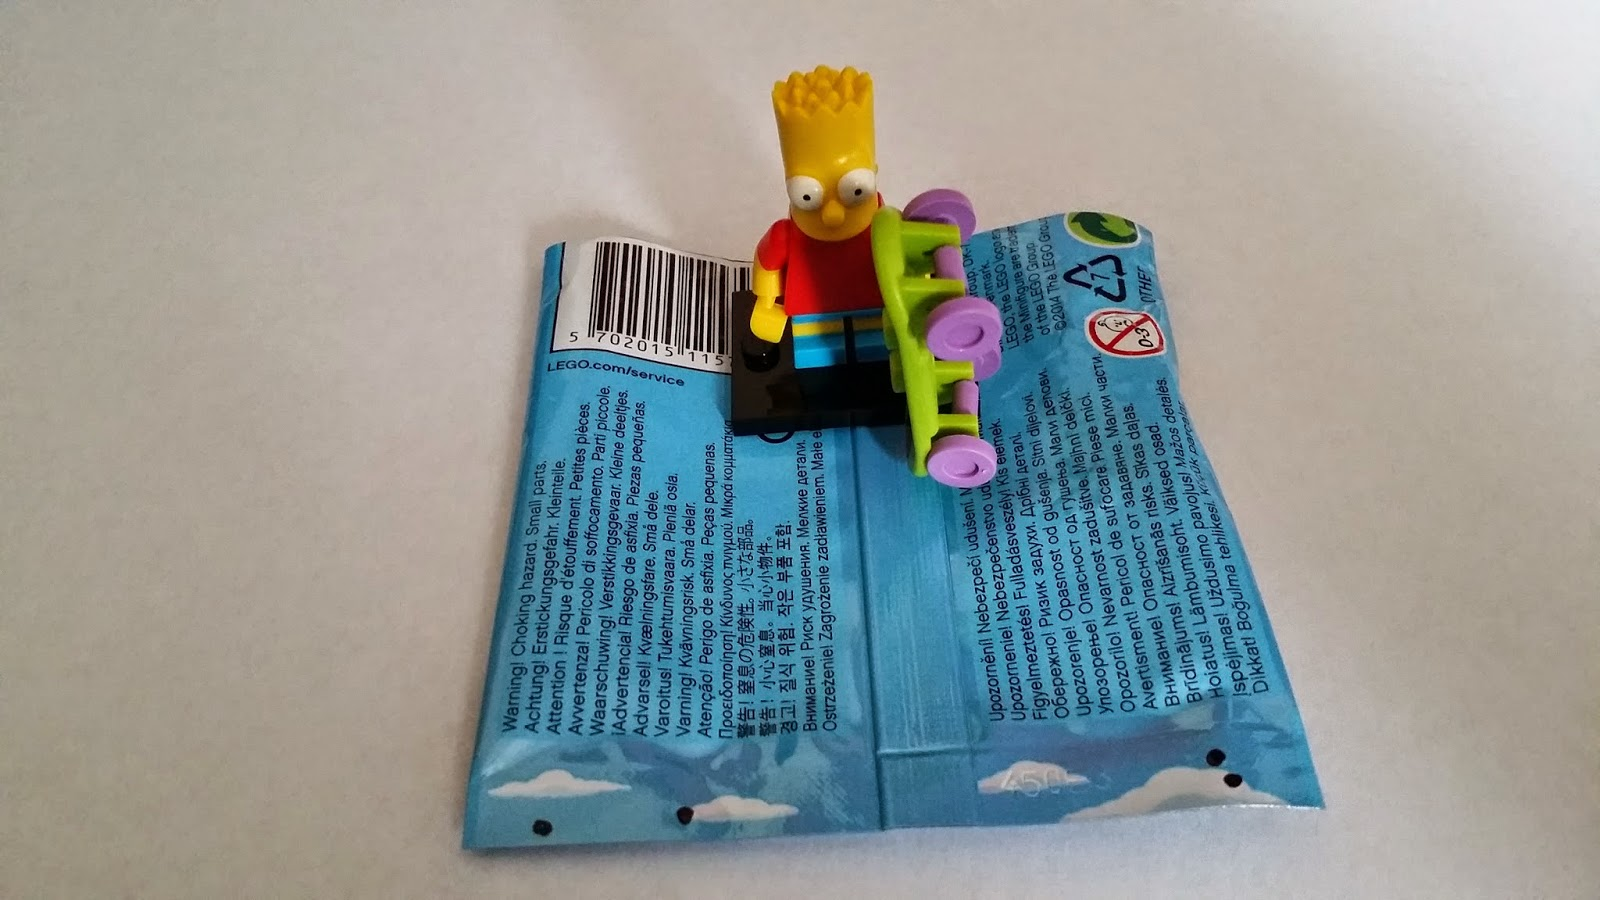 Random Encounters With The Unusual Hunting For The Lego Simpsons